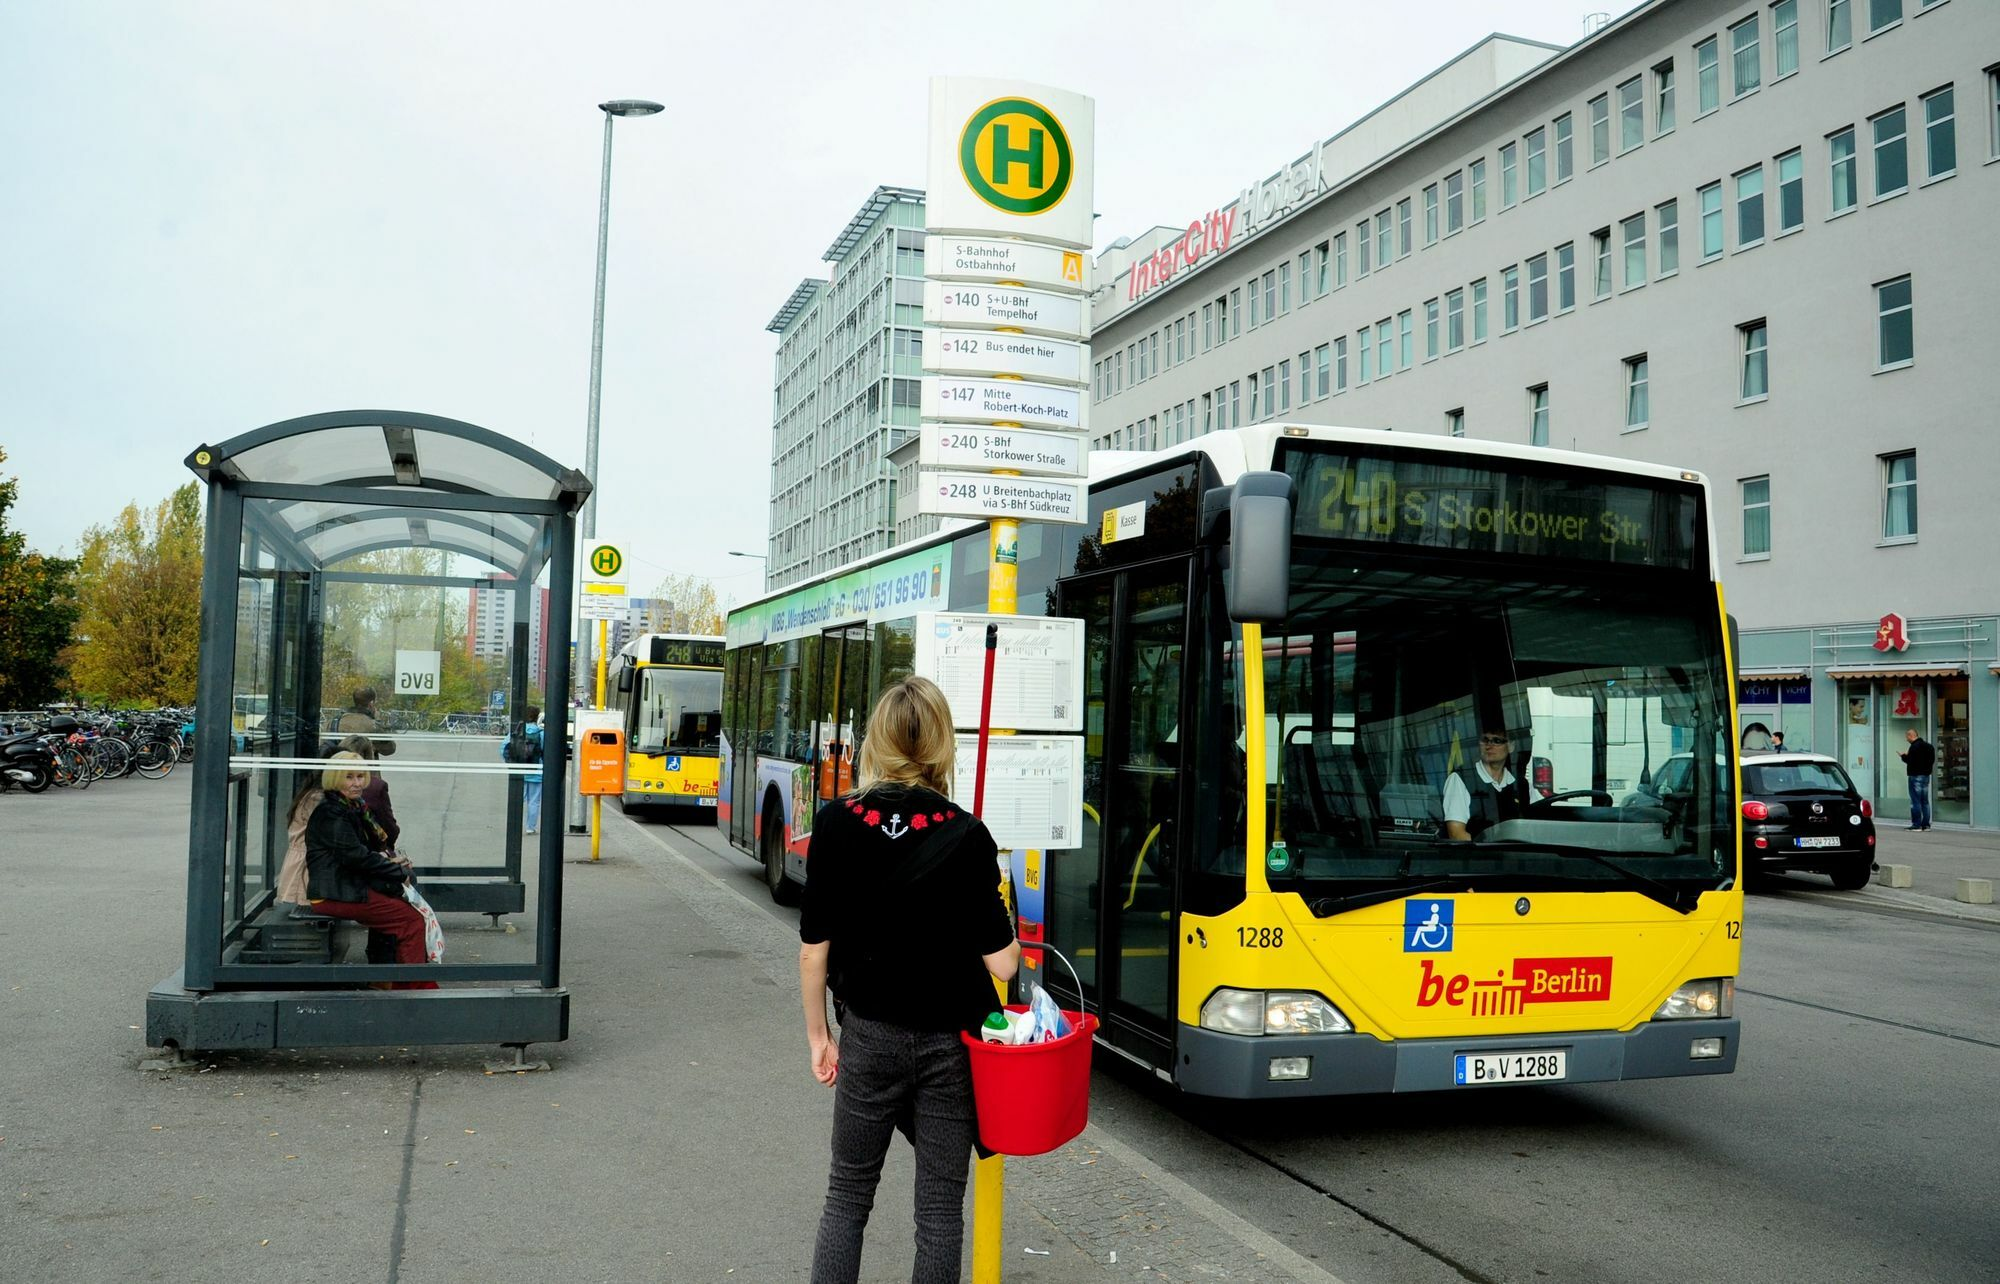 verkehr in berlin bvg bekommt bus mit anh nger berlin tagesspiegel. Black Bedroom Furniture Sets. Home Design Ideas